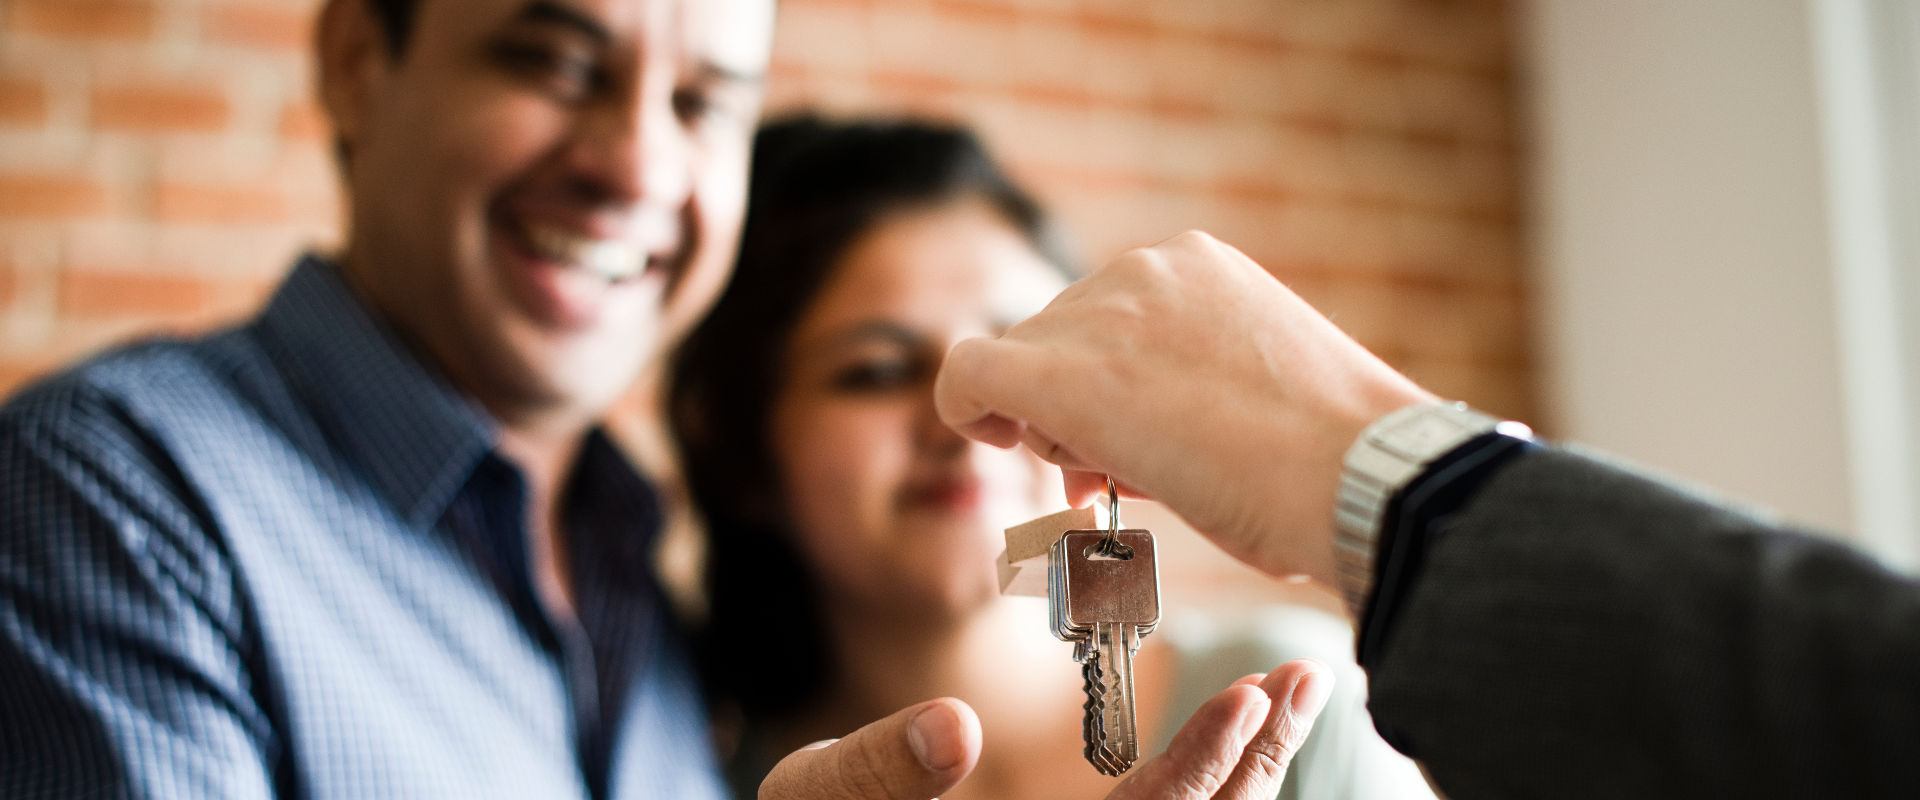 Get a mortgage from a team that understands.